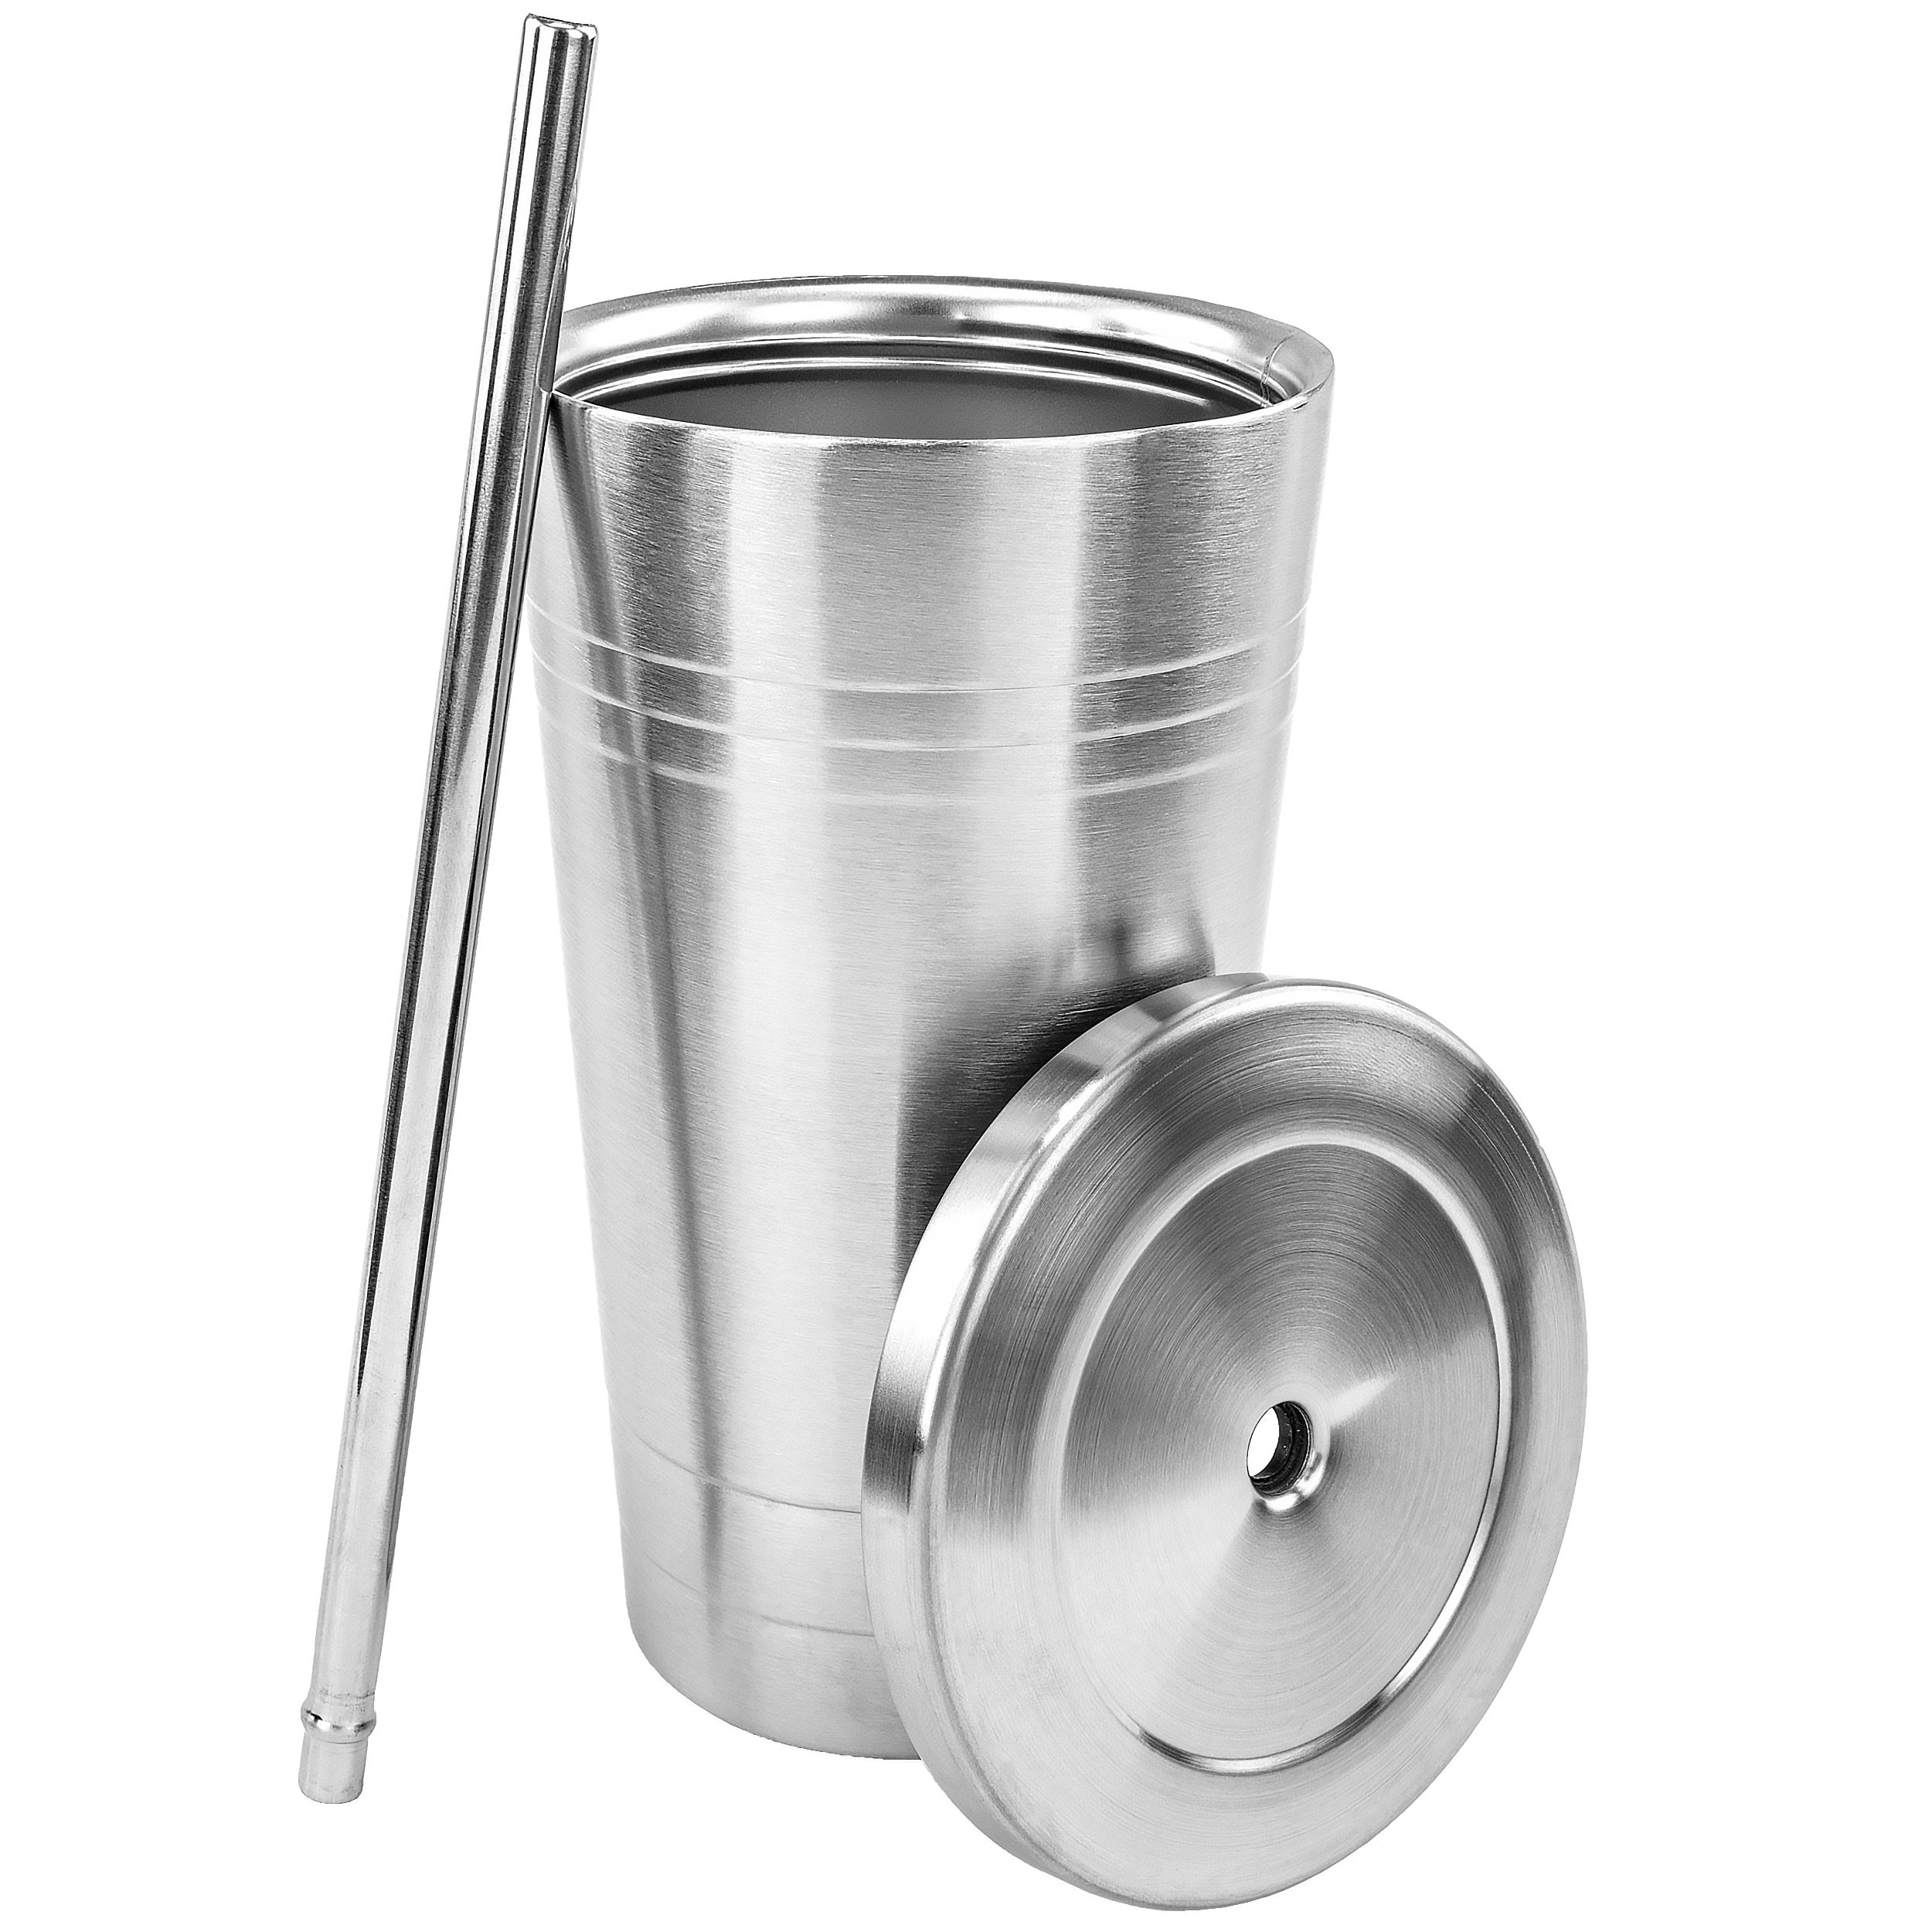 Stainless Steel Double Walled Insulated Cup With Straw and Lid